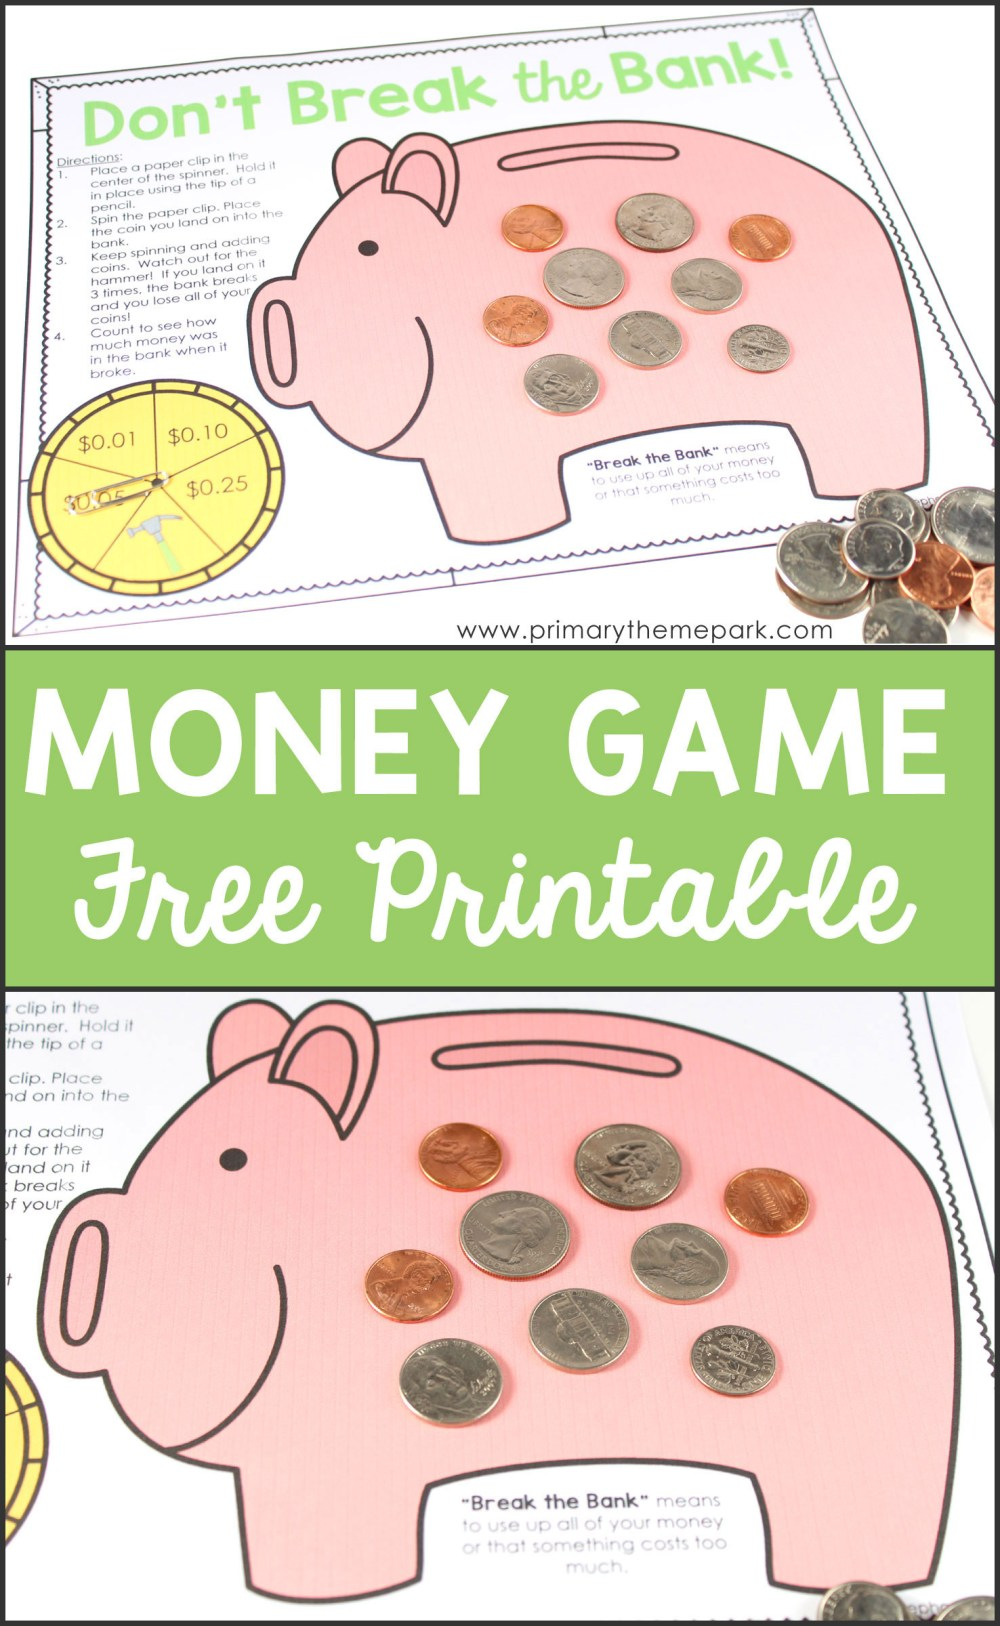 medium resolution of 5 Free Math Worksheets Second Grade 2 Counting Money Counting Money Pennies  Nickels Dimes Quarters 10 Coins - apocalomegaproductions.com